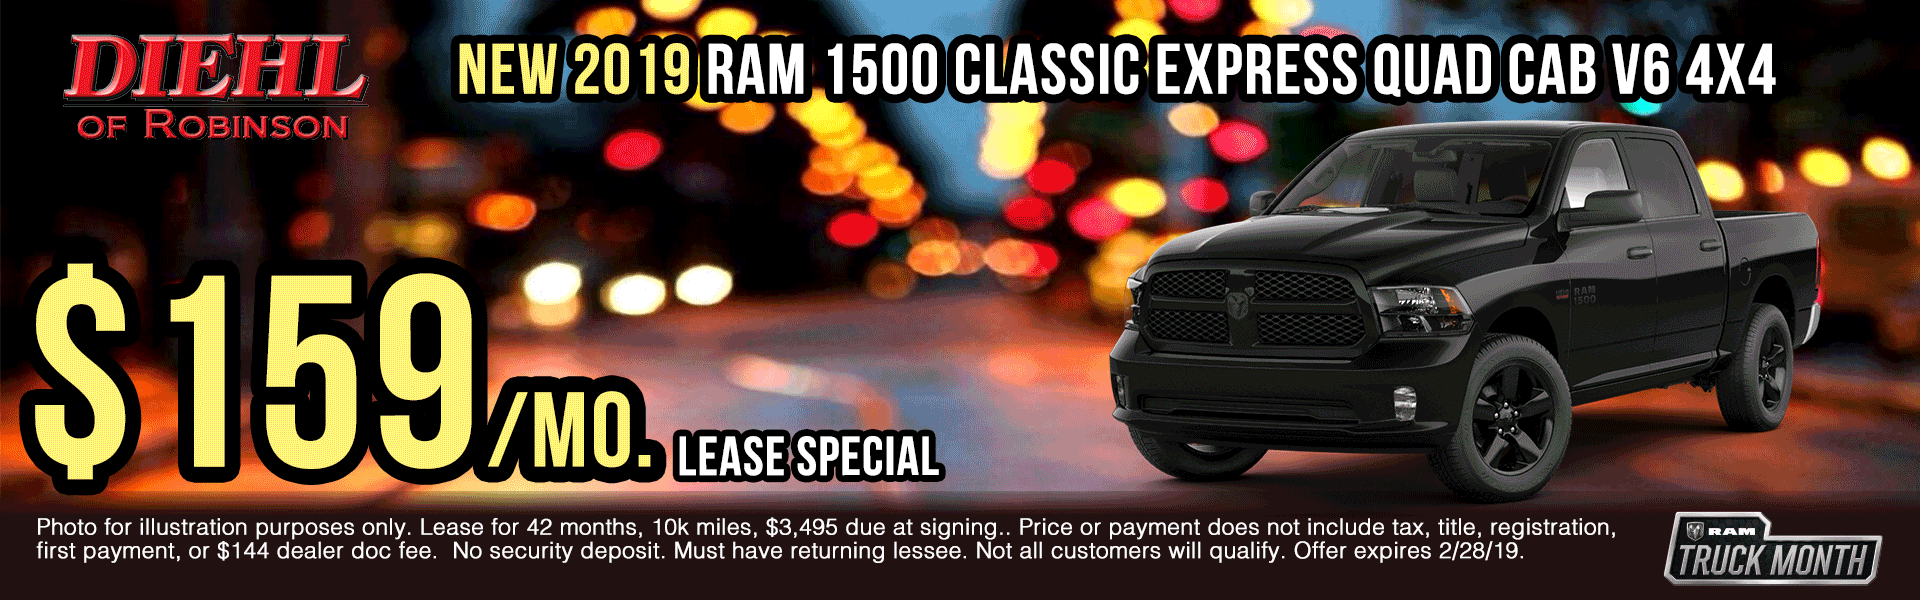 19D0802-2019-ram-1500-classic-express-quad-cab presidents day sales event Ram truck month new vehicle specials ram specials diehl specials diehl Chrysler dodge jeep ram of Robinson diehl of Robinson Diehl Automotive diehl Robinson chrysler specials jeep specials dodge specials truck specials lease specials